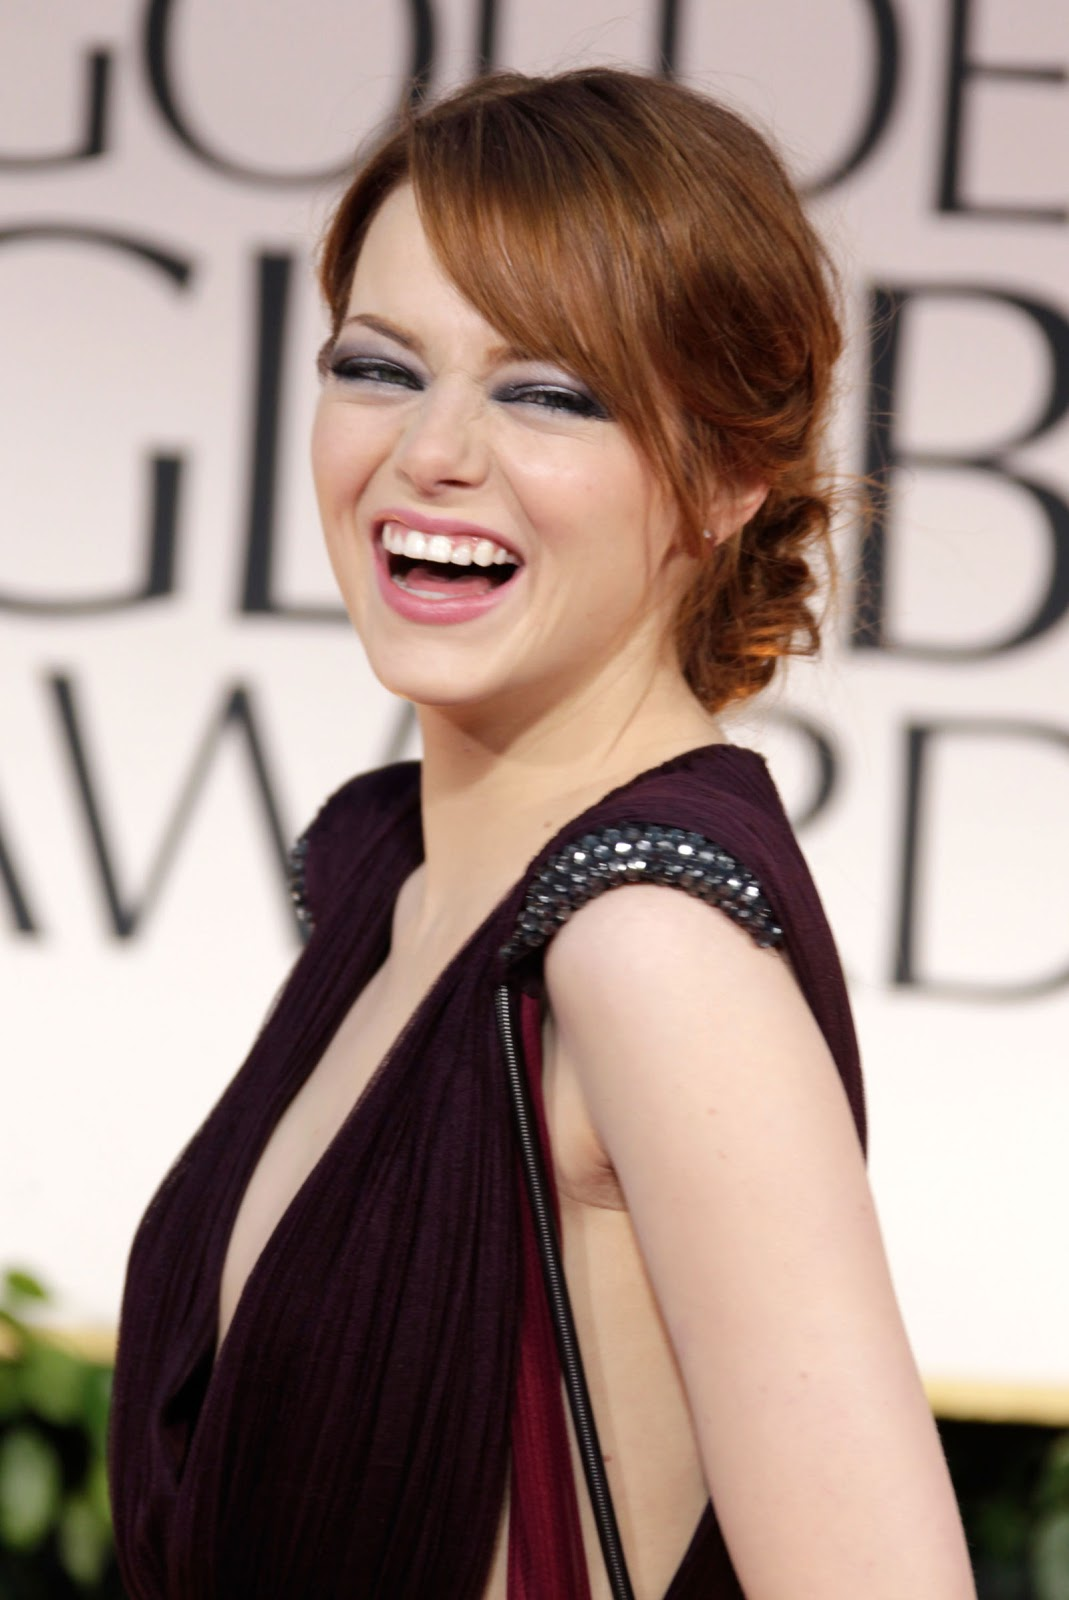 Sexy Emma Stone iPhone wallpapers 1069x1600